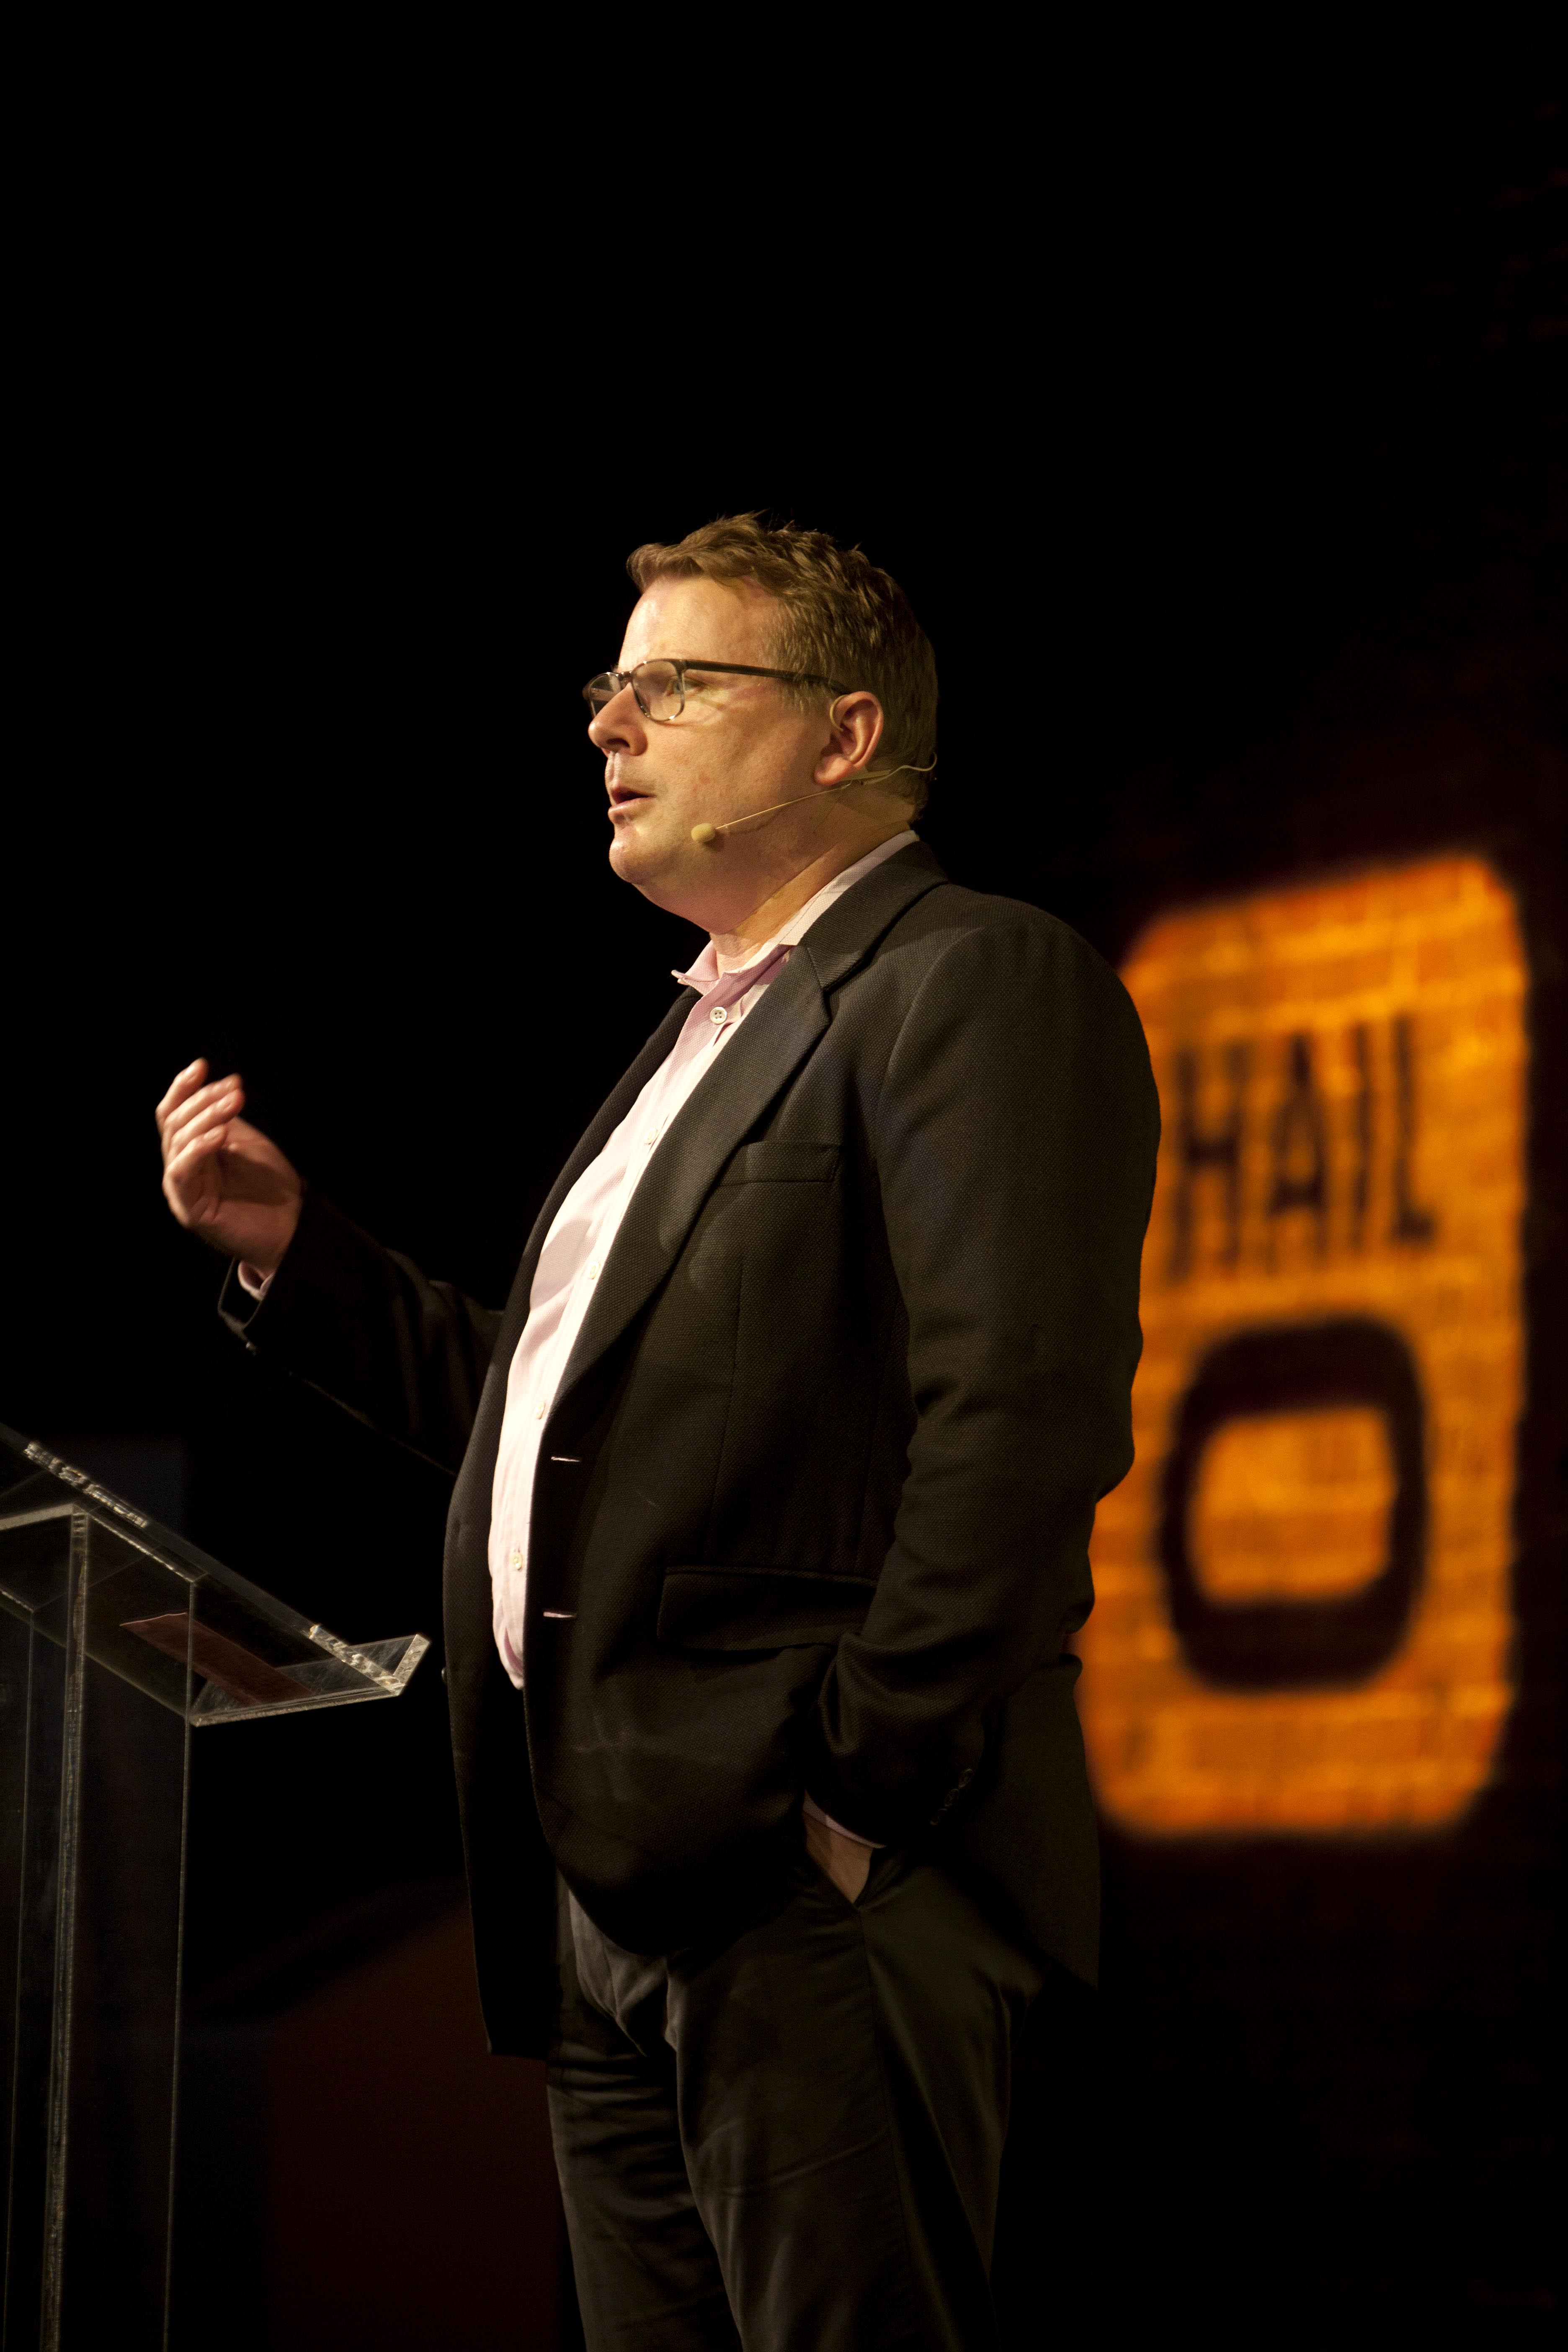 Hailo CEO Tom Barr, speaking at FutureLondon conference